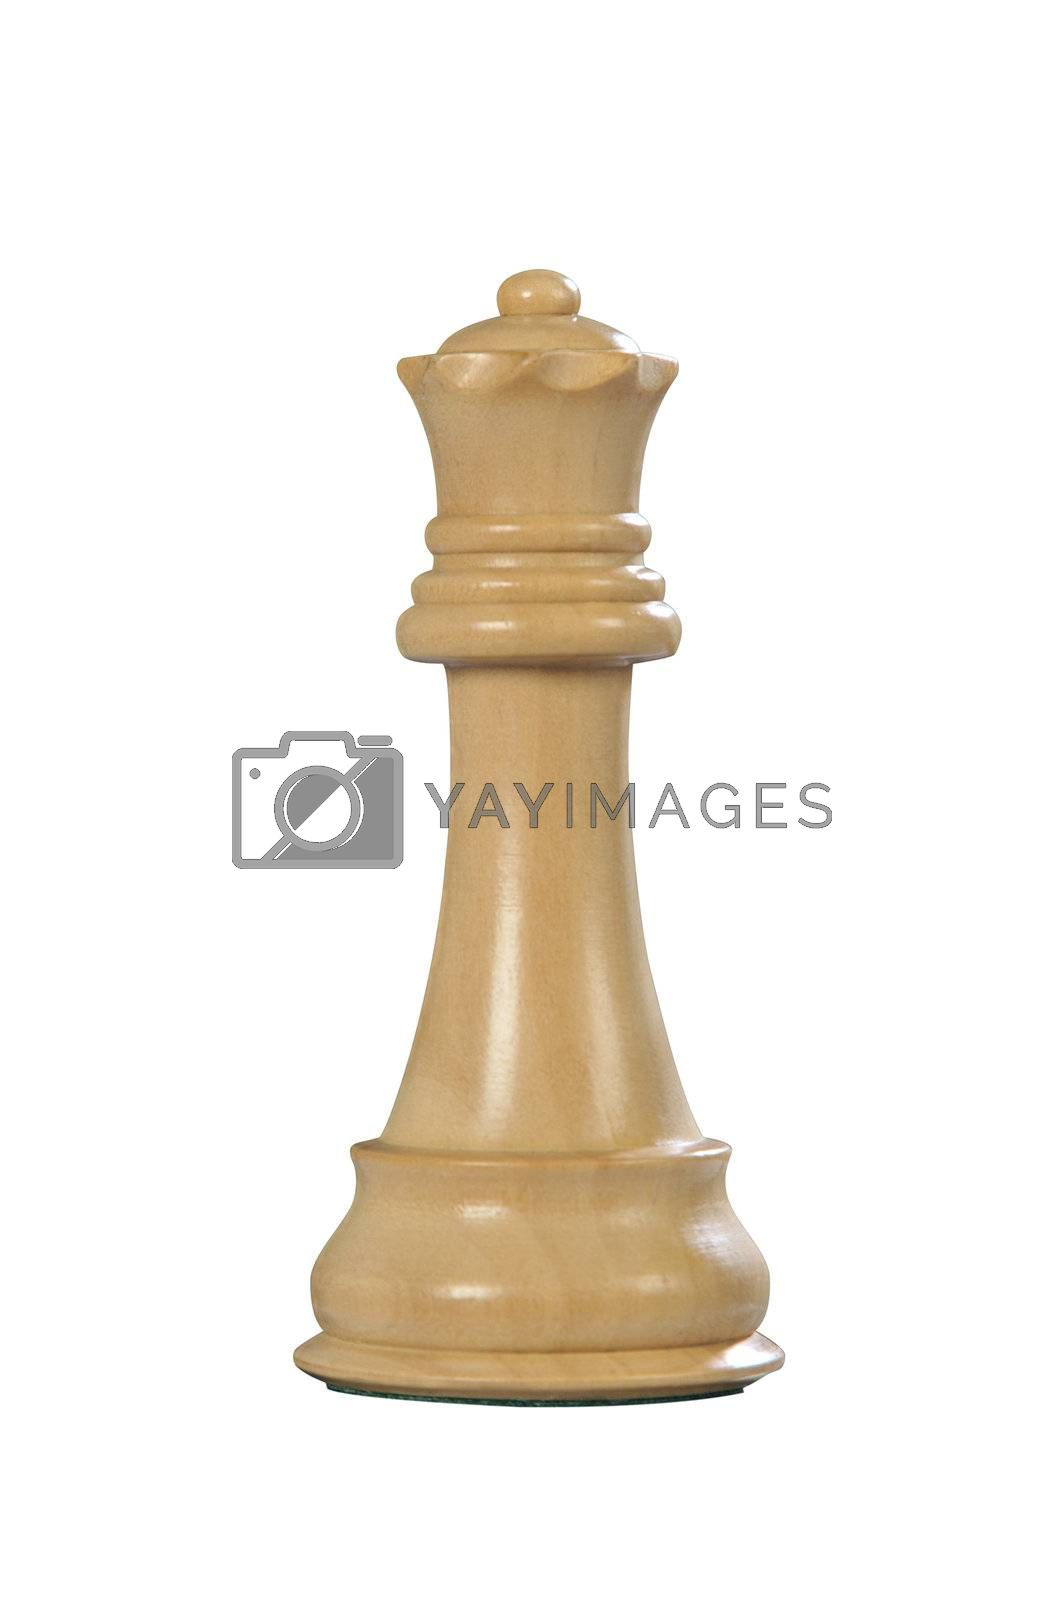 White wooden queen - one of 12 different chess piece